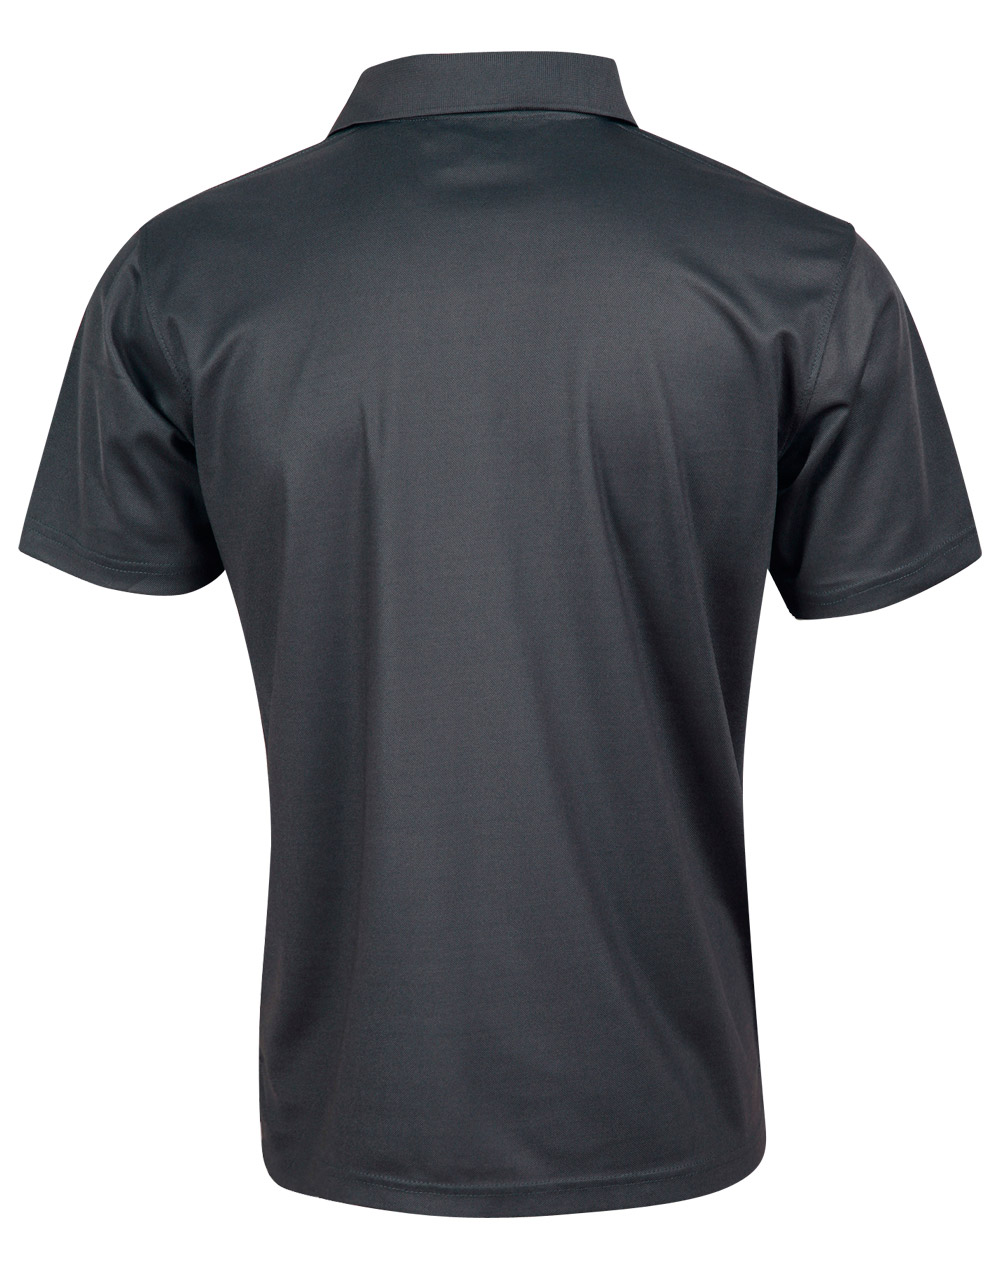 https://s3-ap-southeast-1.amazonaws.com/ws-imgs/POLOSHIRTS/PS81_Charcoal_Back.jpg